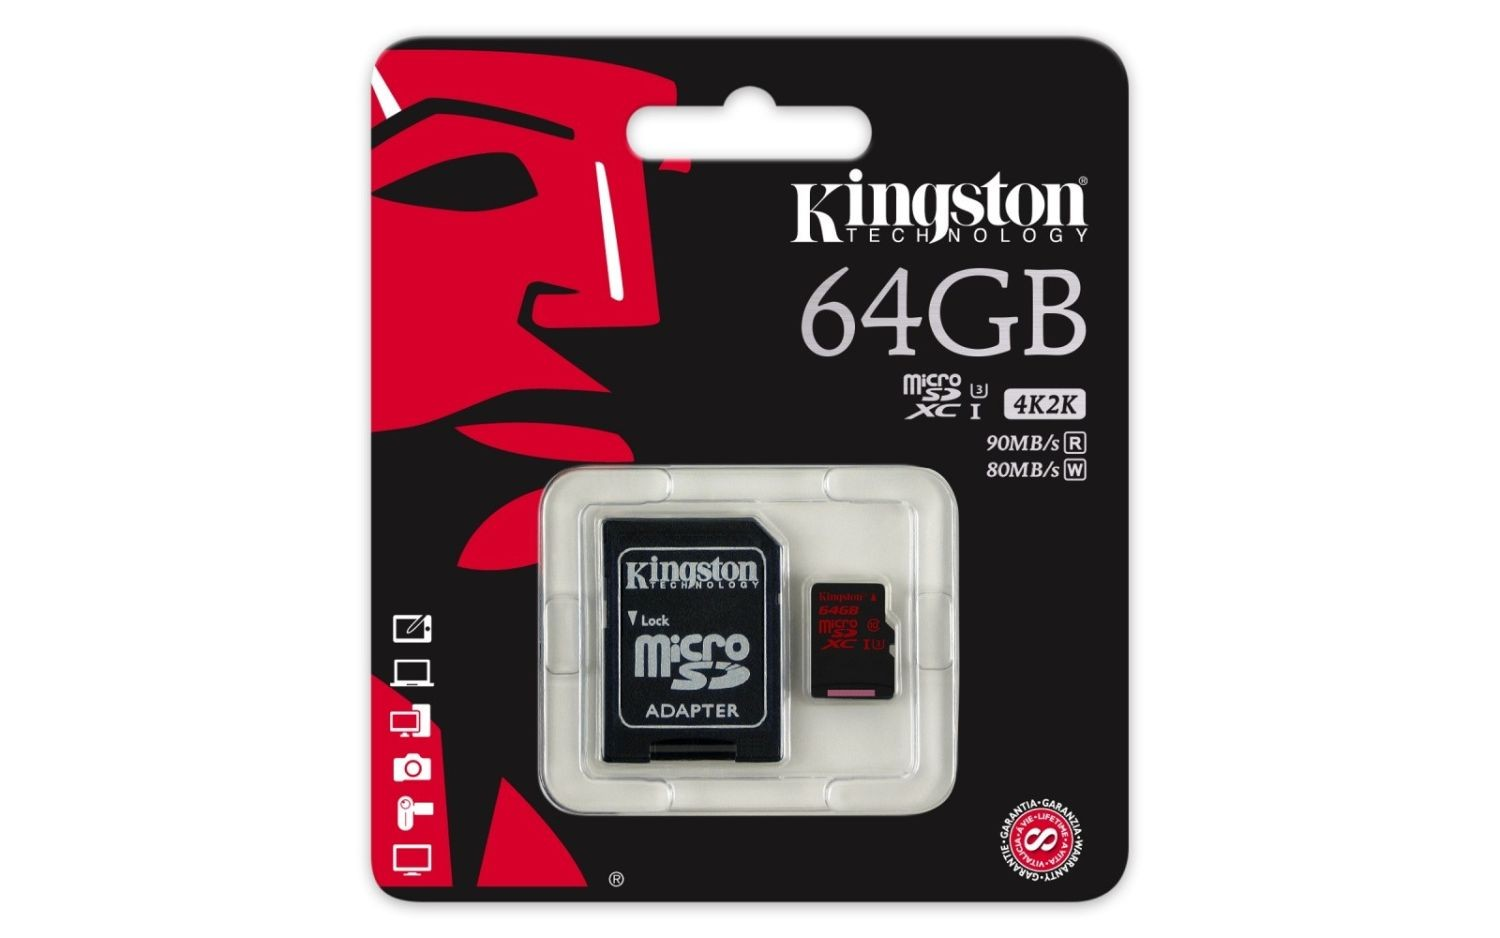 Kingston karta pamięci microSDXC 64GB UHS-I U3 (read/write;90/80MB/s) + Adapter